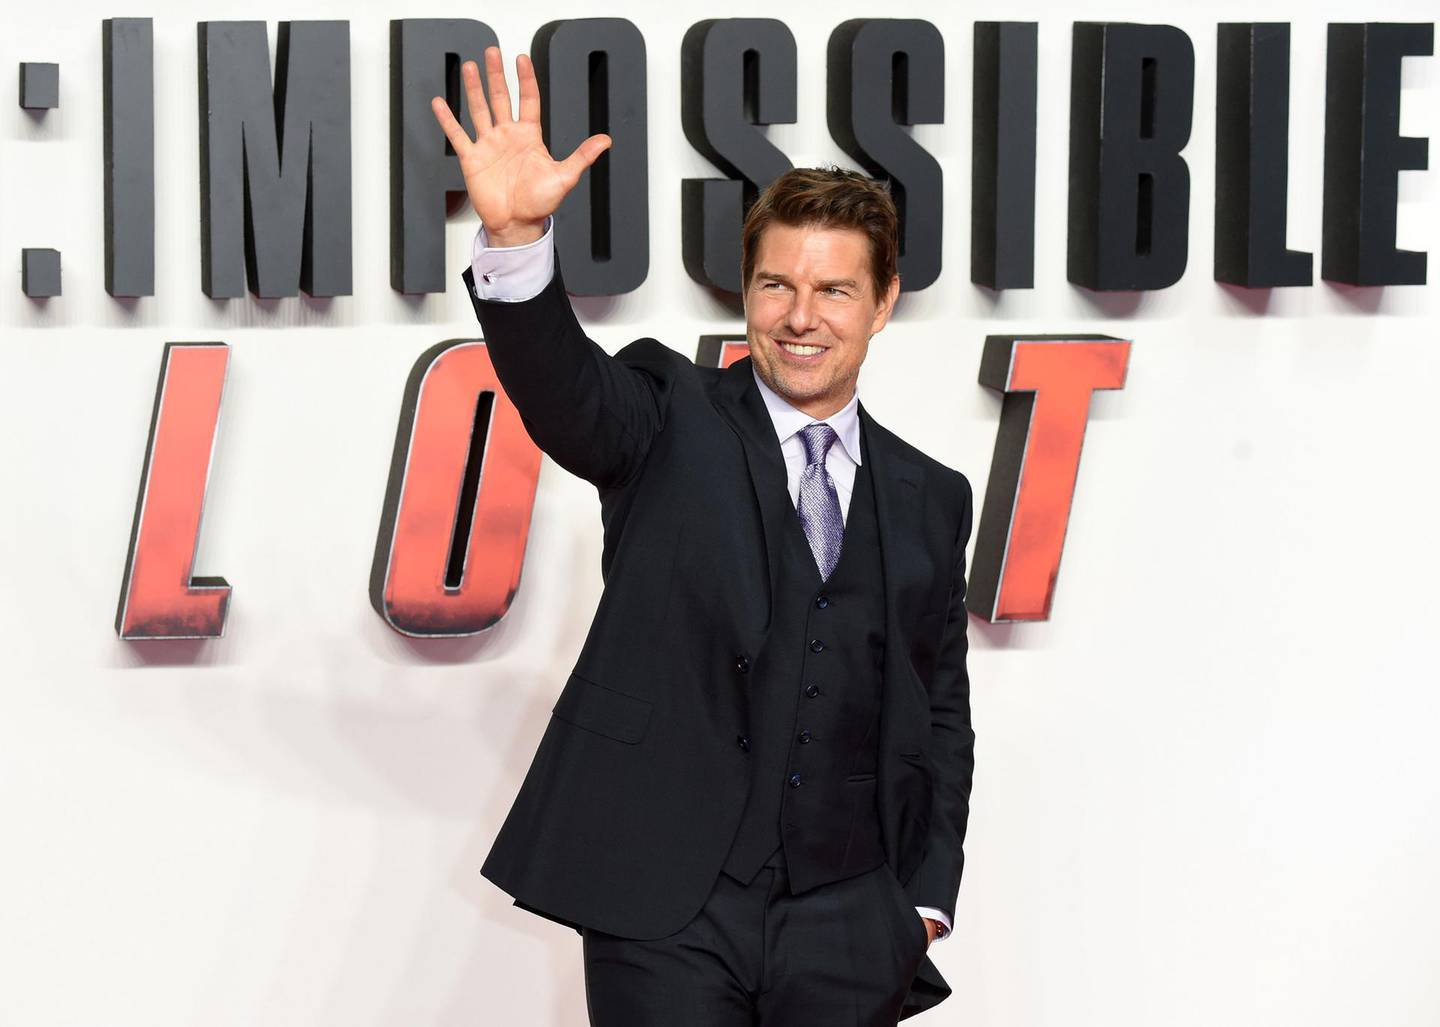 (FILES) In this file photo taken on July 13, 2018 US actor Tom Cruise arrives for the UK premiere of the film Mission: Impossible - Fallout in London. Far from being wiped out by the coronavirus pandemic, Britain's film and television industry is enjoying a blockbuster run thanks in large part to a surge in online streaming. Attracting global production teams to spectacular landscapes, gothic castles and state-of-the-art studios in the UK, the nation's film industry has enjoyed big growth in recent years -- also thanks to tax breaks.   / AFP / Anthony HARVEY